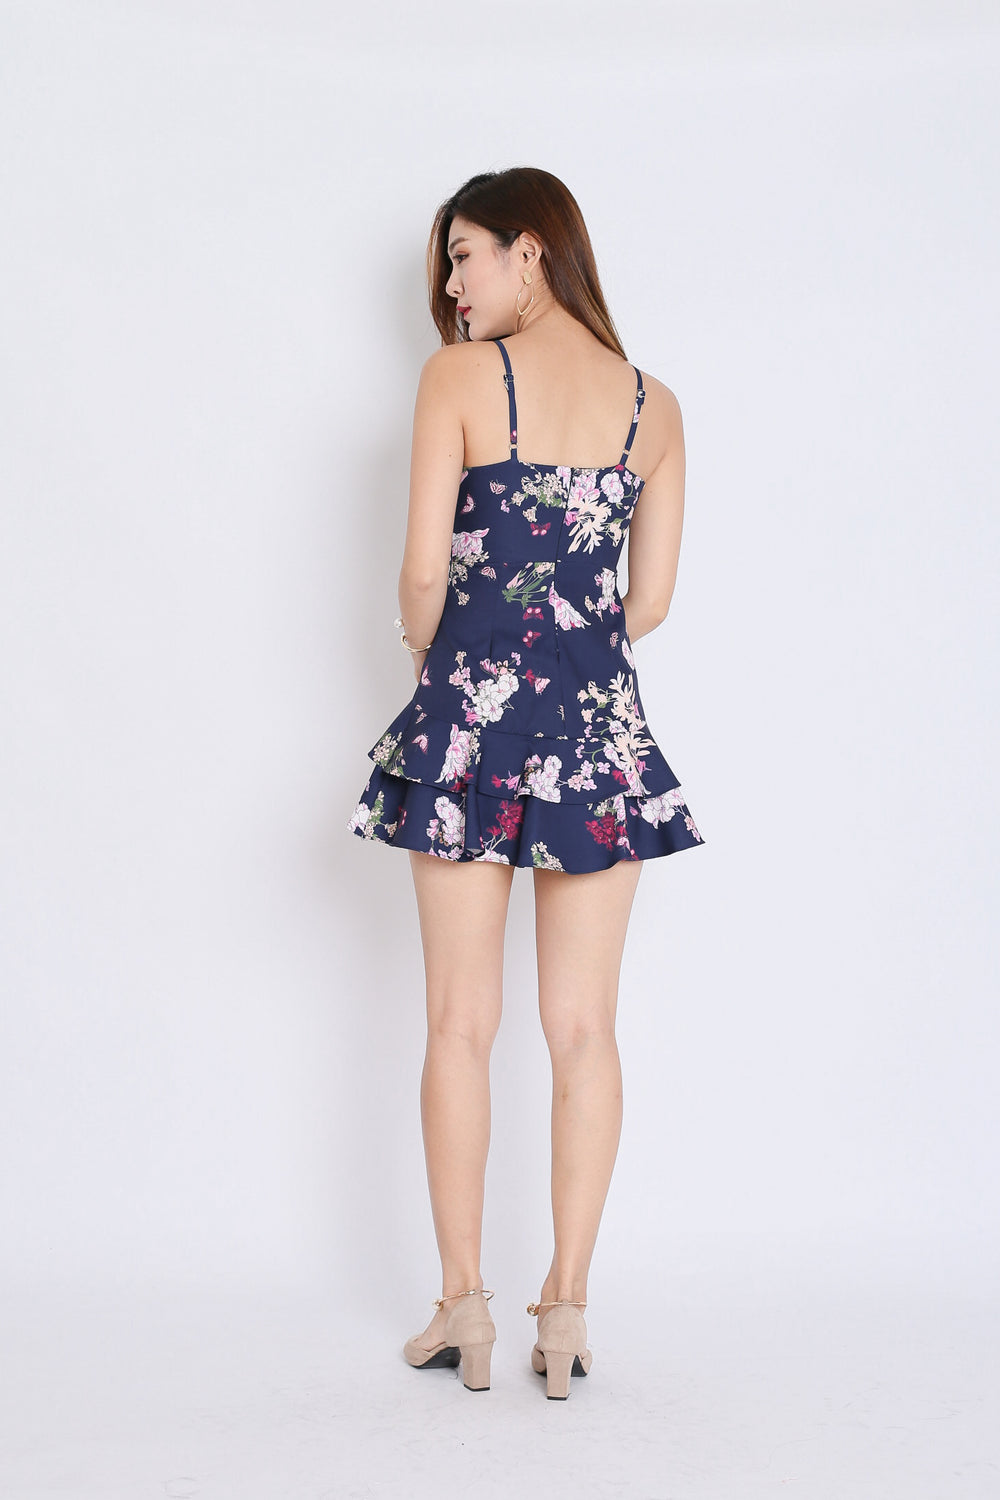 (PREMIUM) SAGE RUFFLES DRESS ROMPER IN NAVY FLORALS